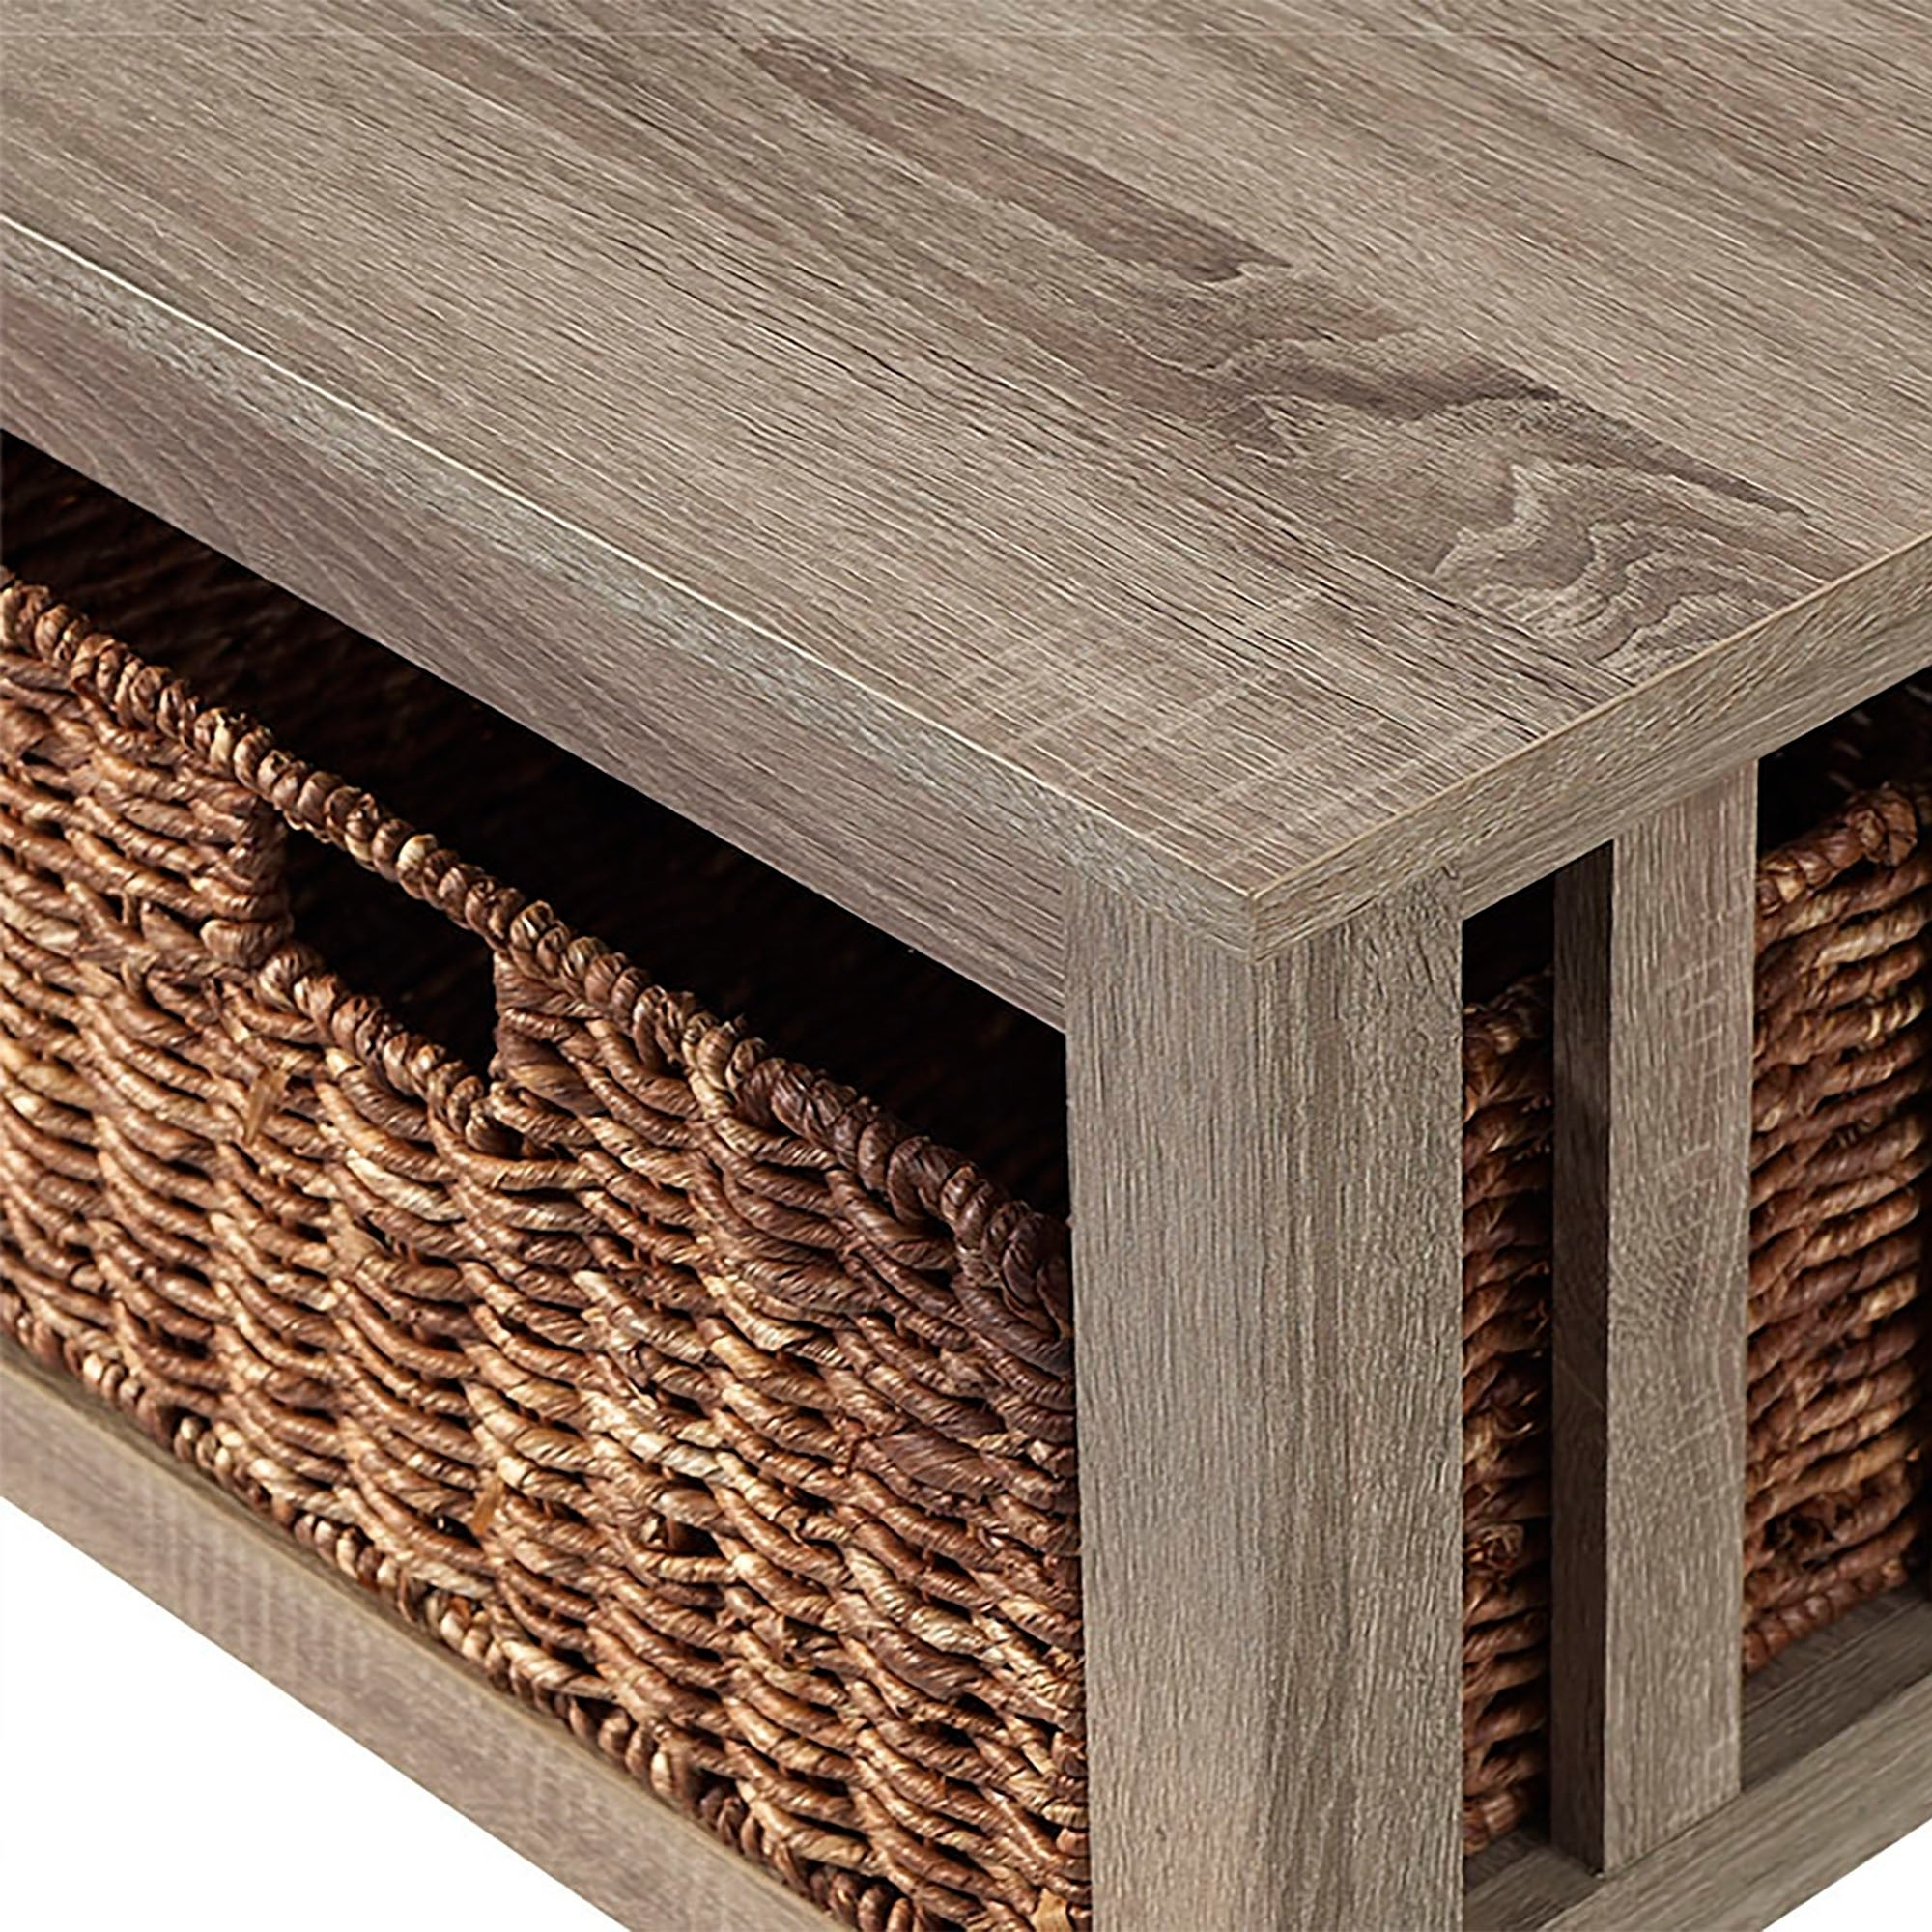 Most Current Rustic Coffee Tables With Wicker Storage Baskets Regarding Middlebrook Designs 40 Inch Coffee Table With Wicker Storage Baskets, Driftwood, Rustic Living Room Table – 40 X 22 X 18h (View 4 of 20)